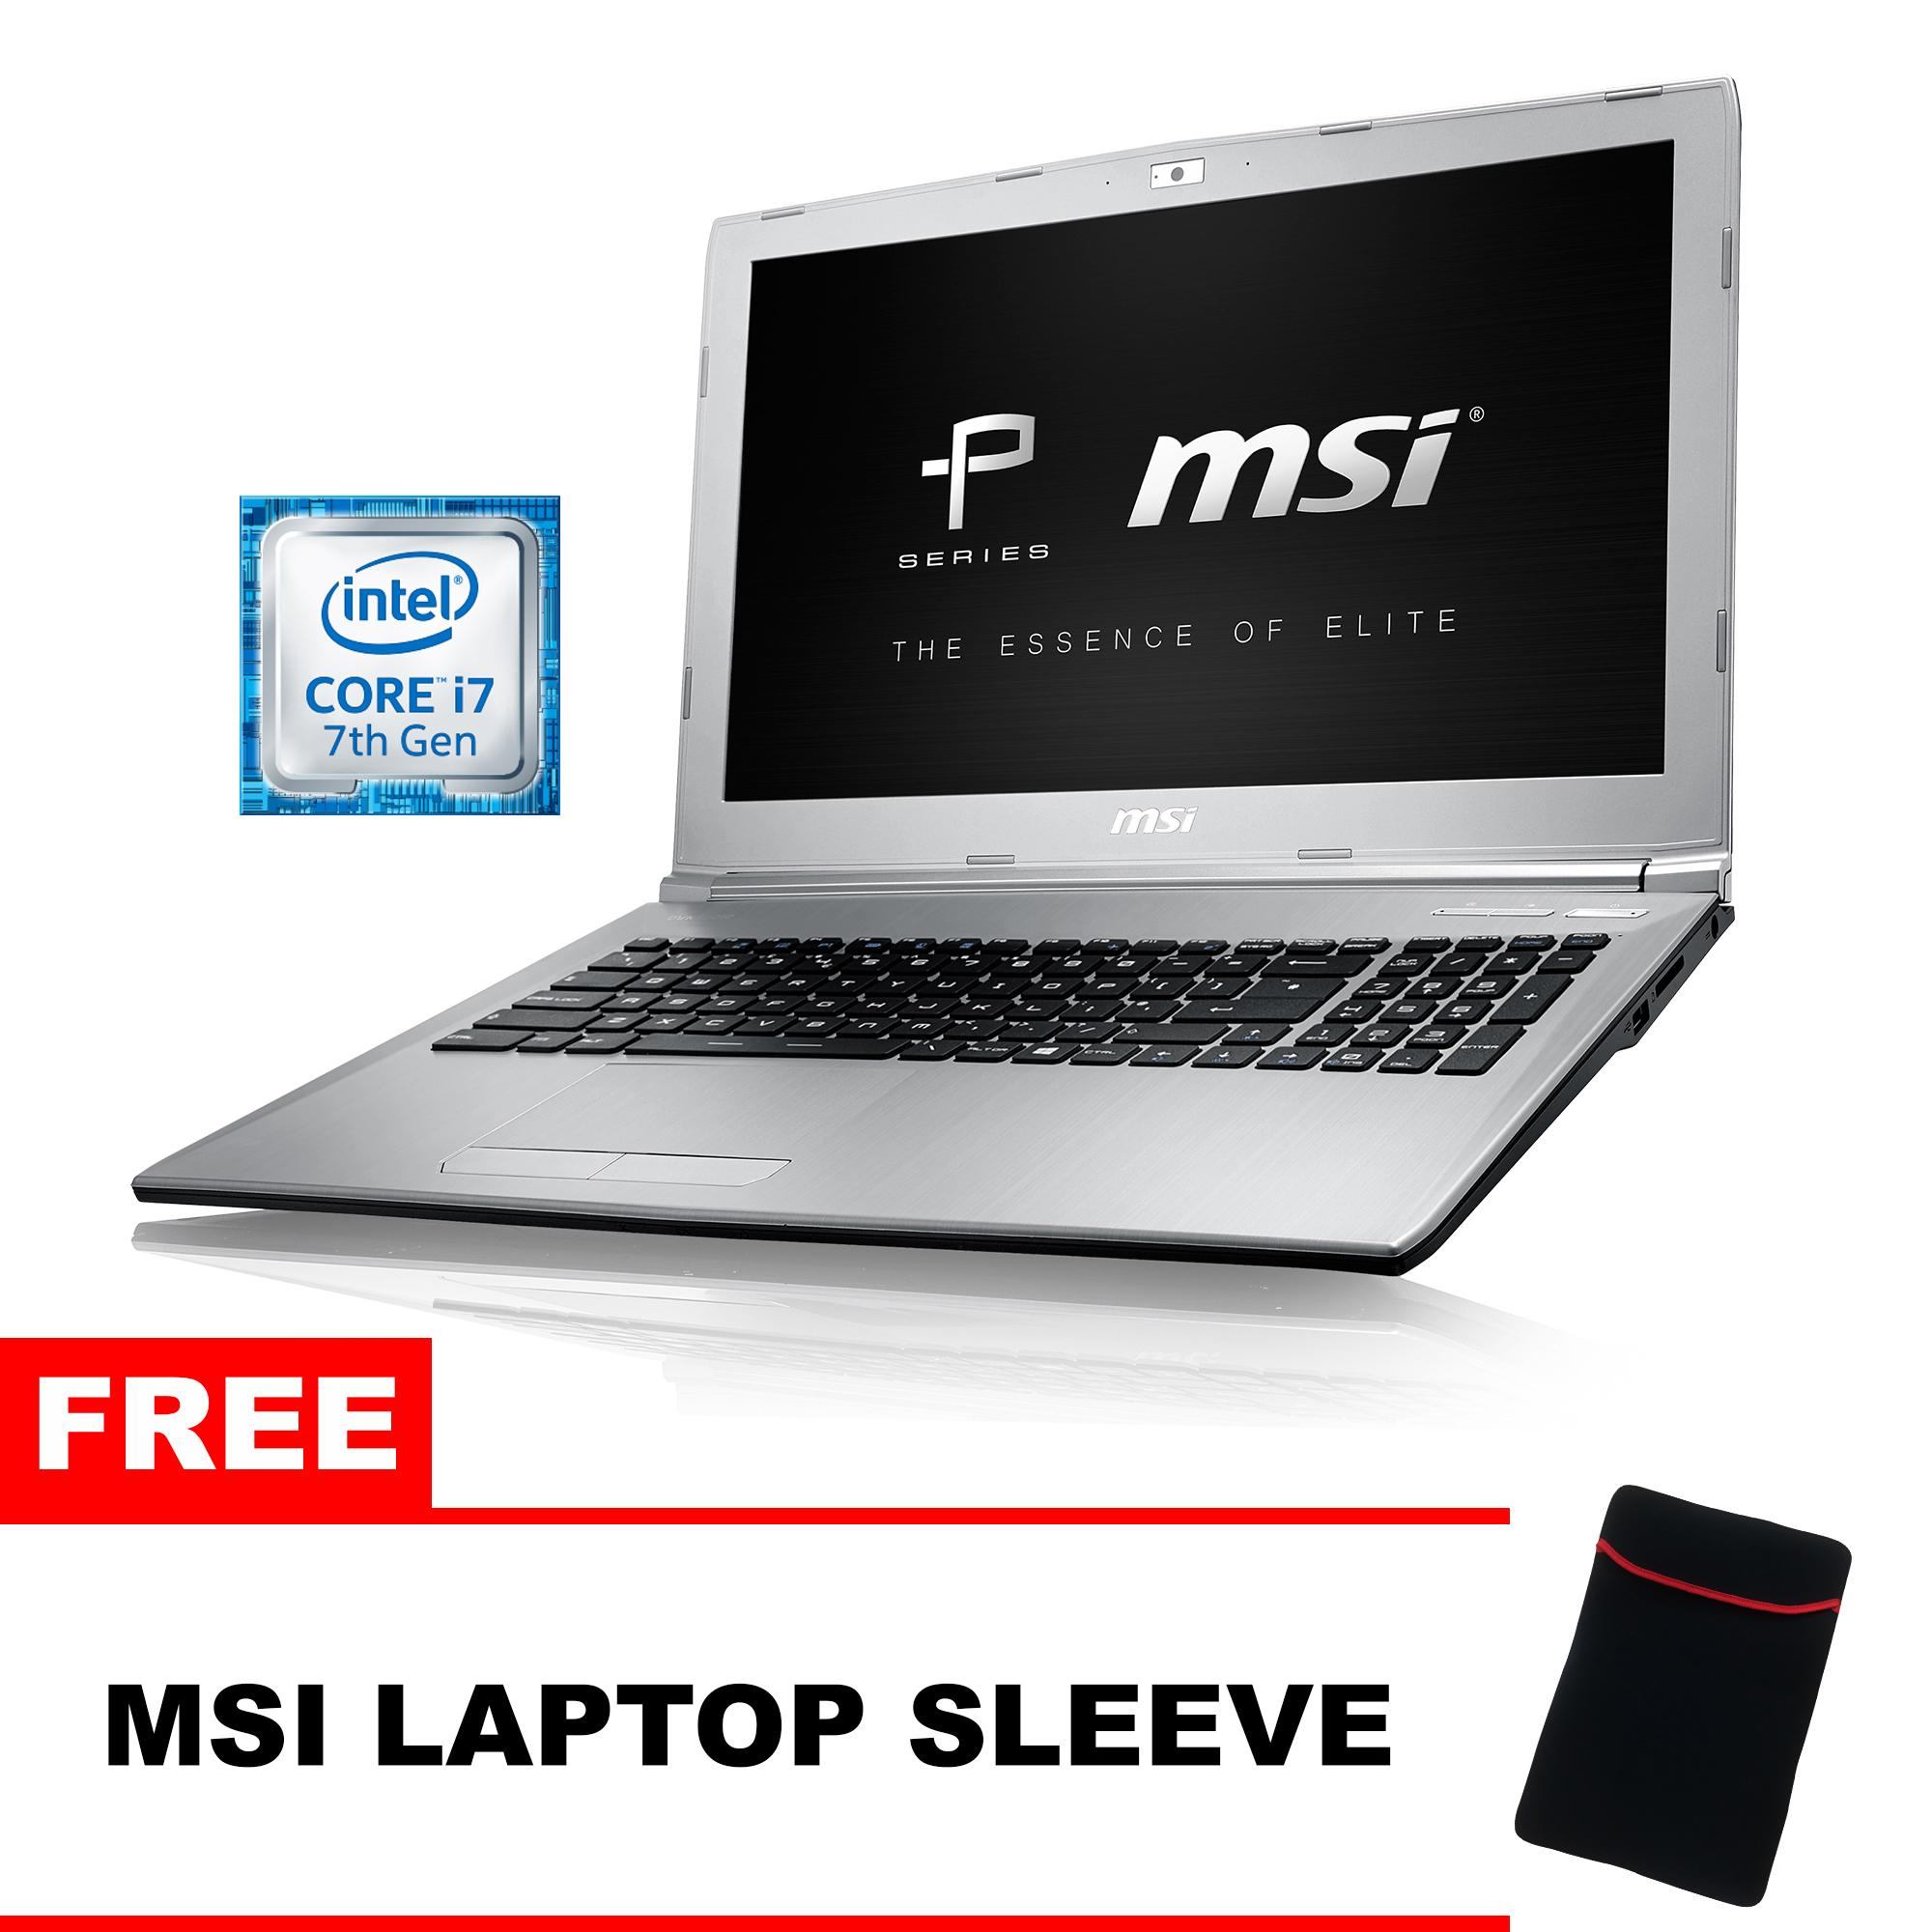 Msi Gt72s 6qf Dominator Pro G Gaming Laptop Dragon Edition Philippines Laptops For Sale Prices Reviews Lazada Pl62 7rc 232ph 156 Intel Core I5 7300hq 4gb 1tb